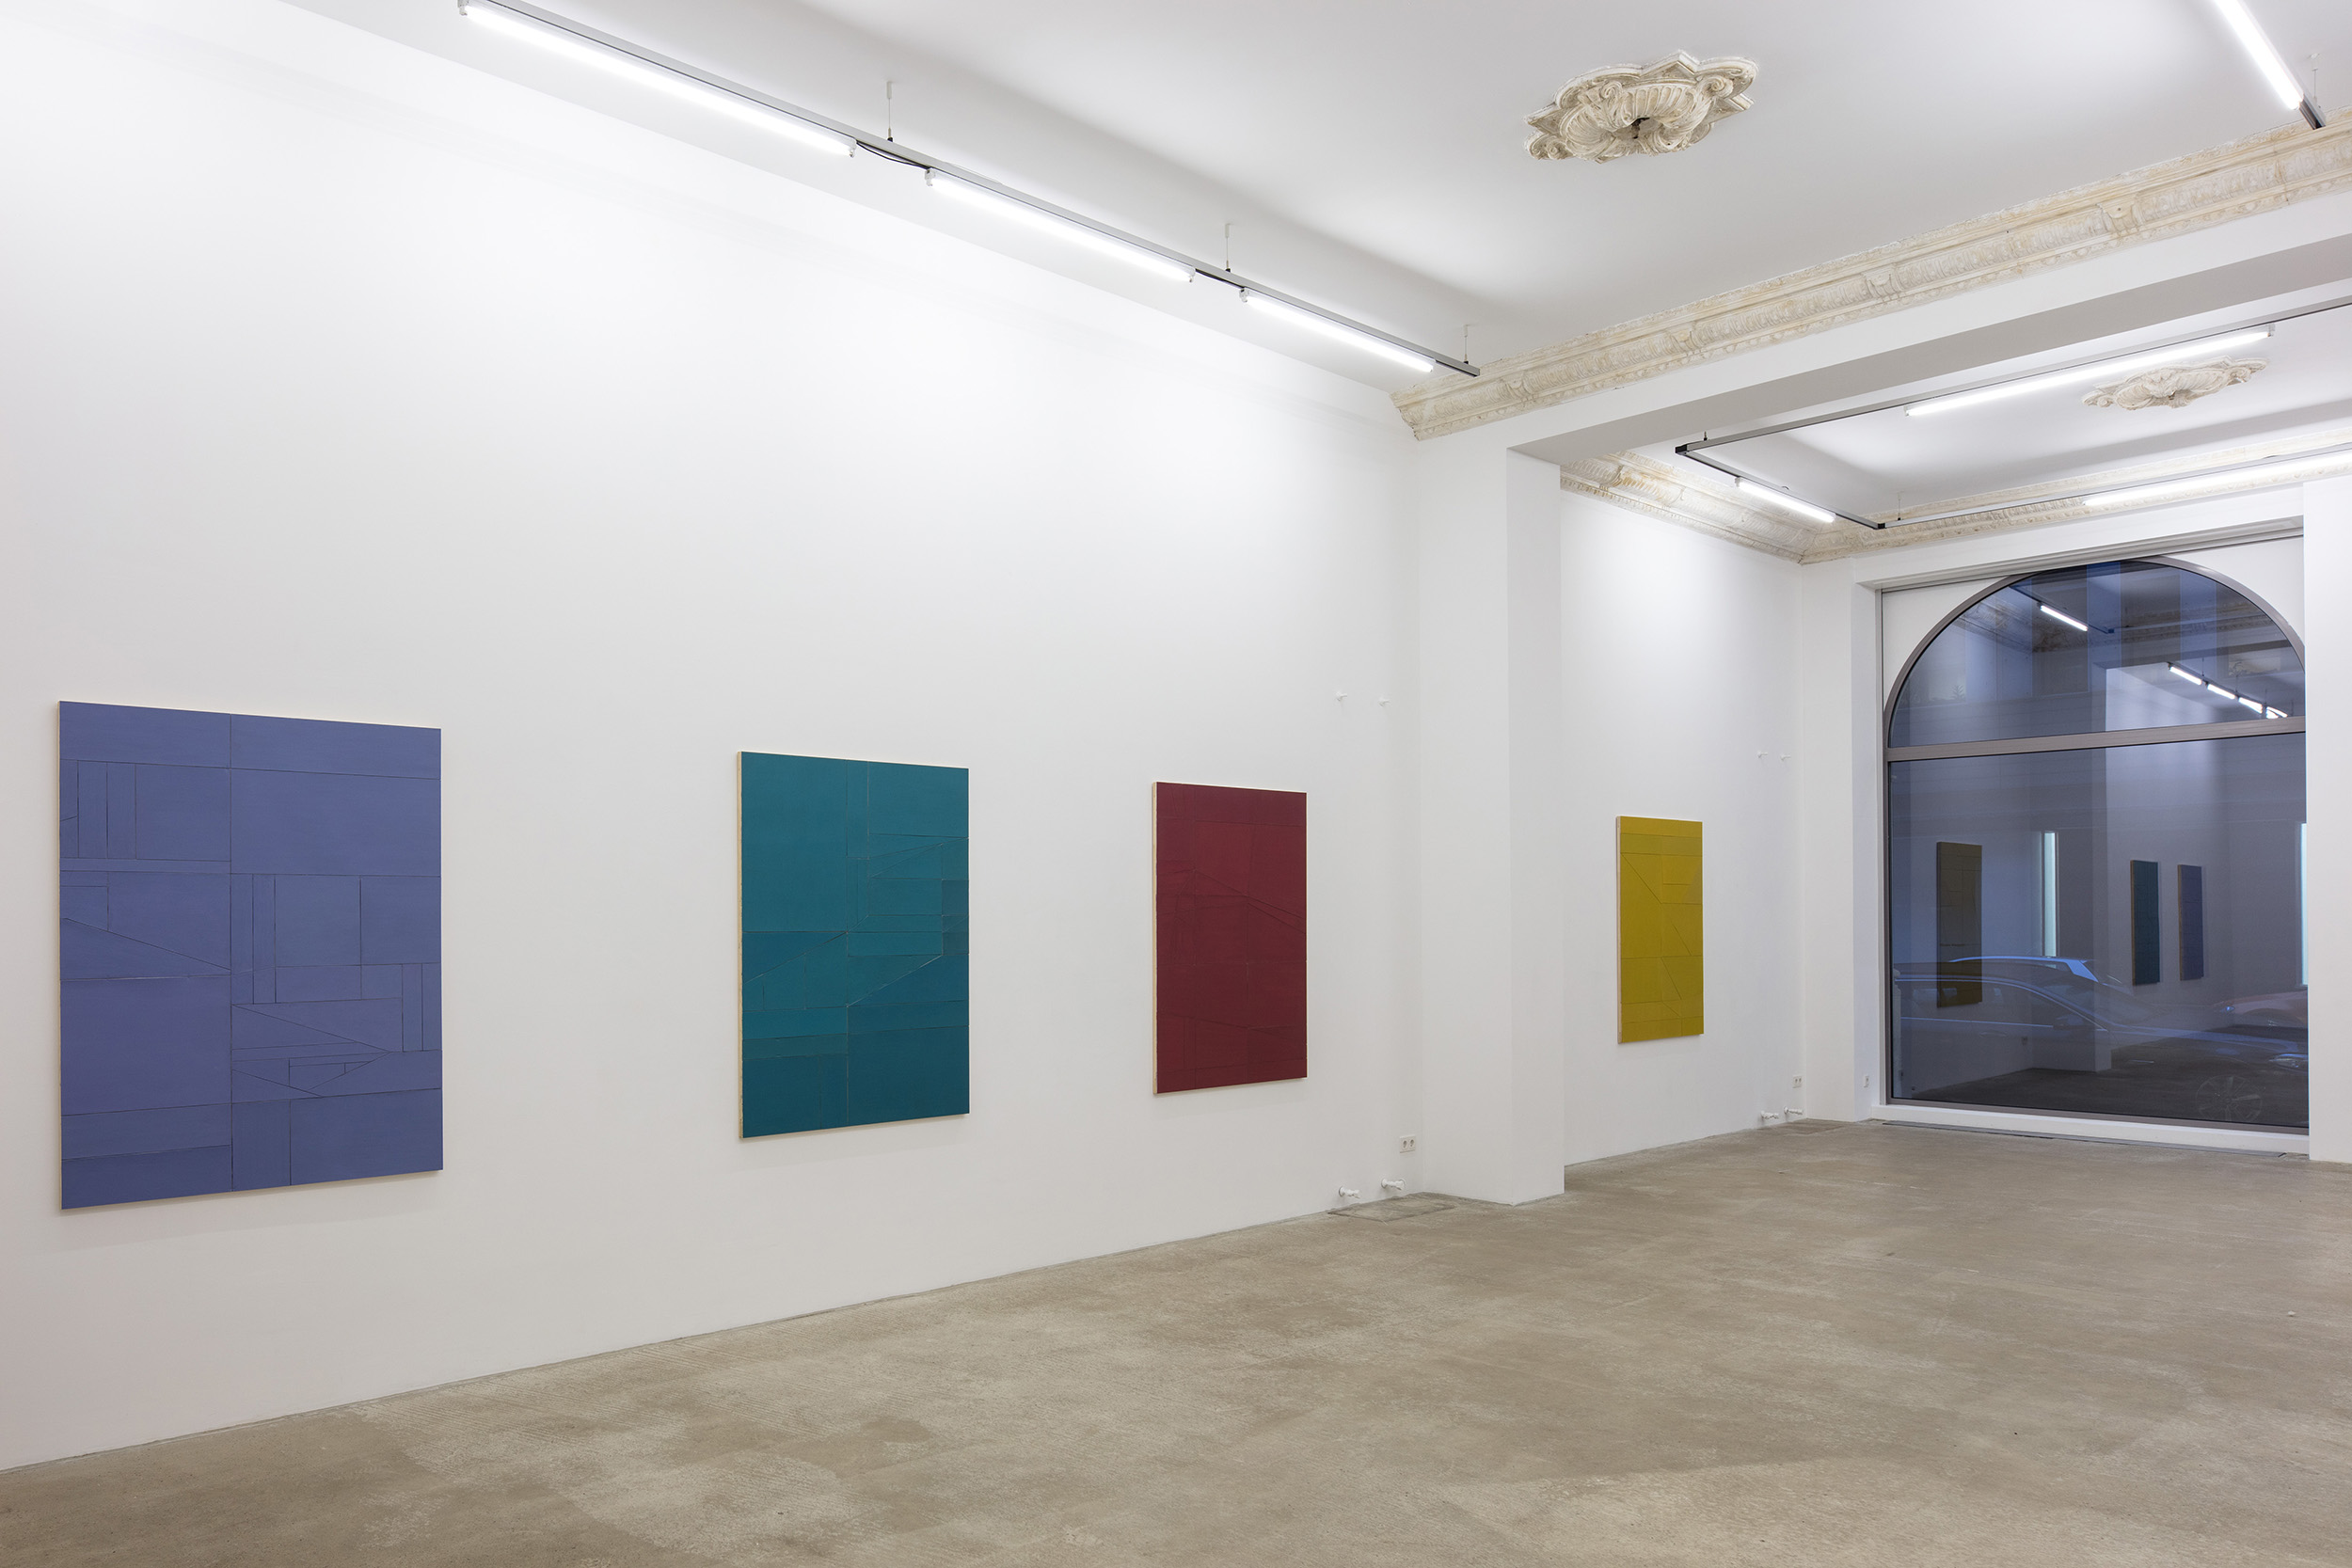 7 - Florian Schmit at Daniel Marzona Berlin - suggested by Ivan Seal